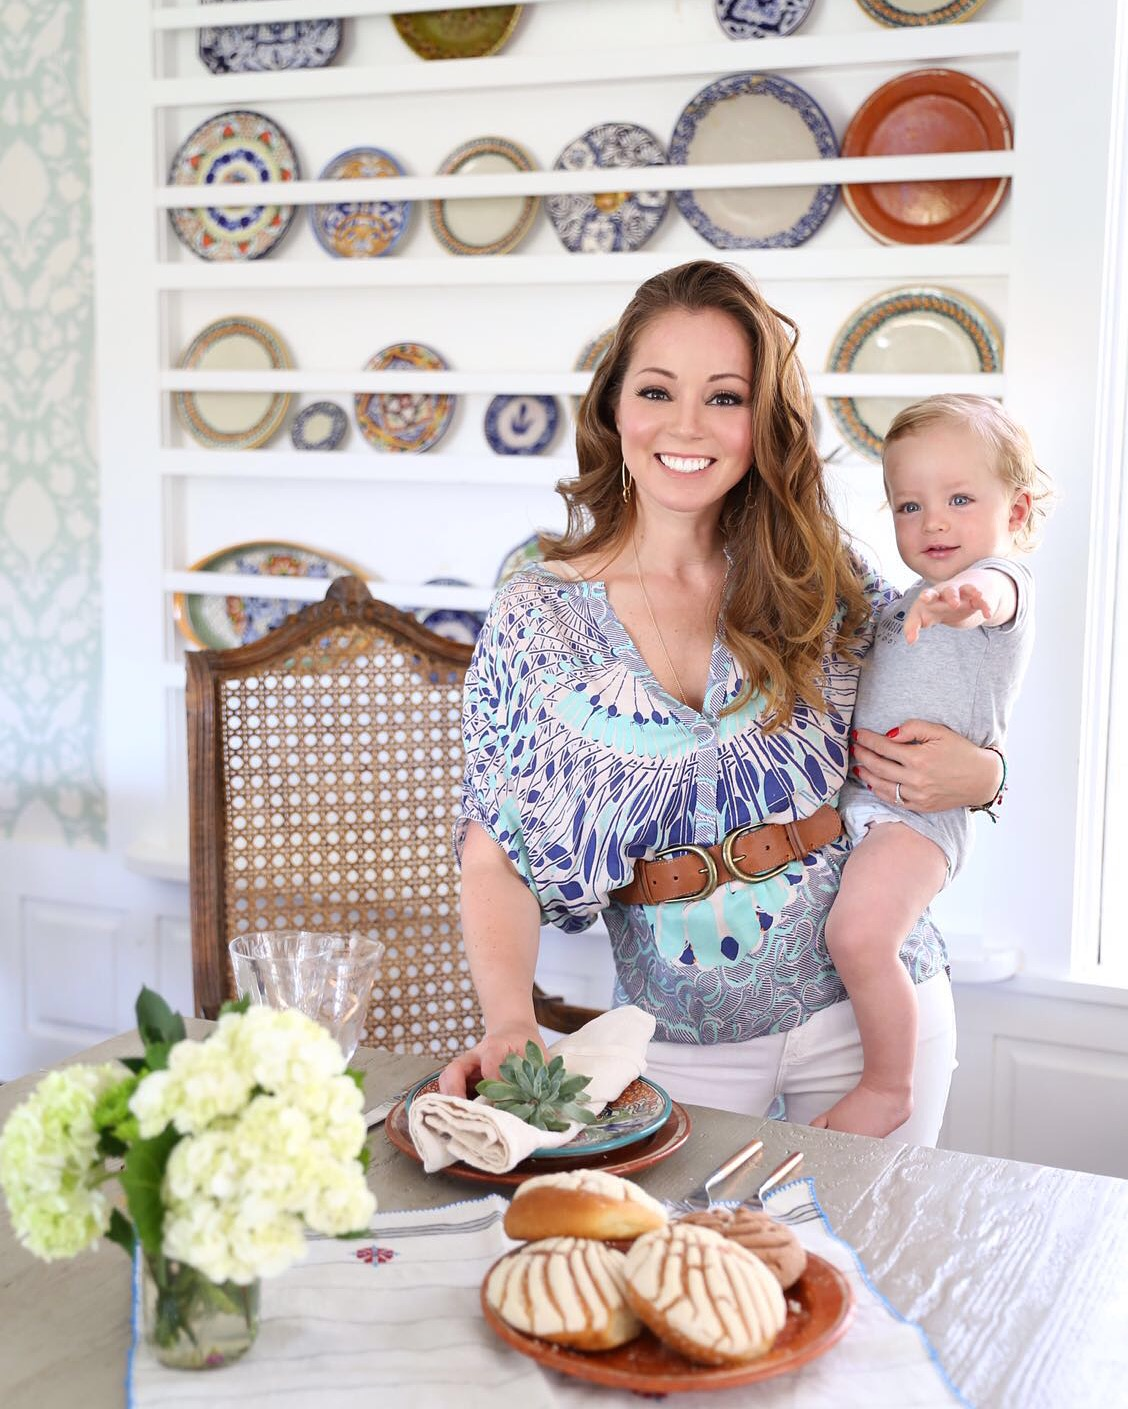 Chef Marcela Valladolid and Her son David